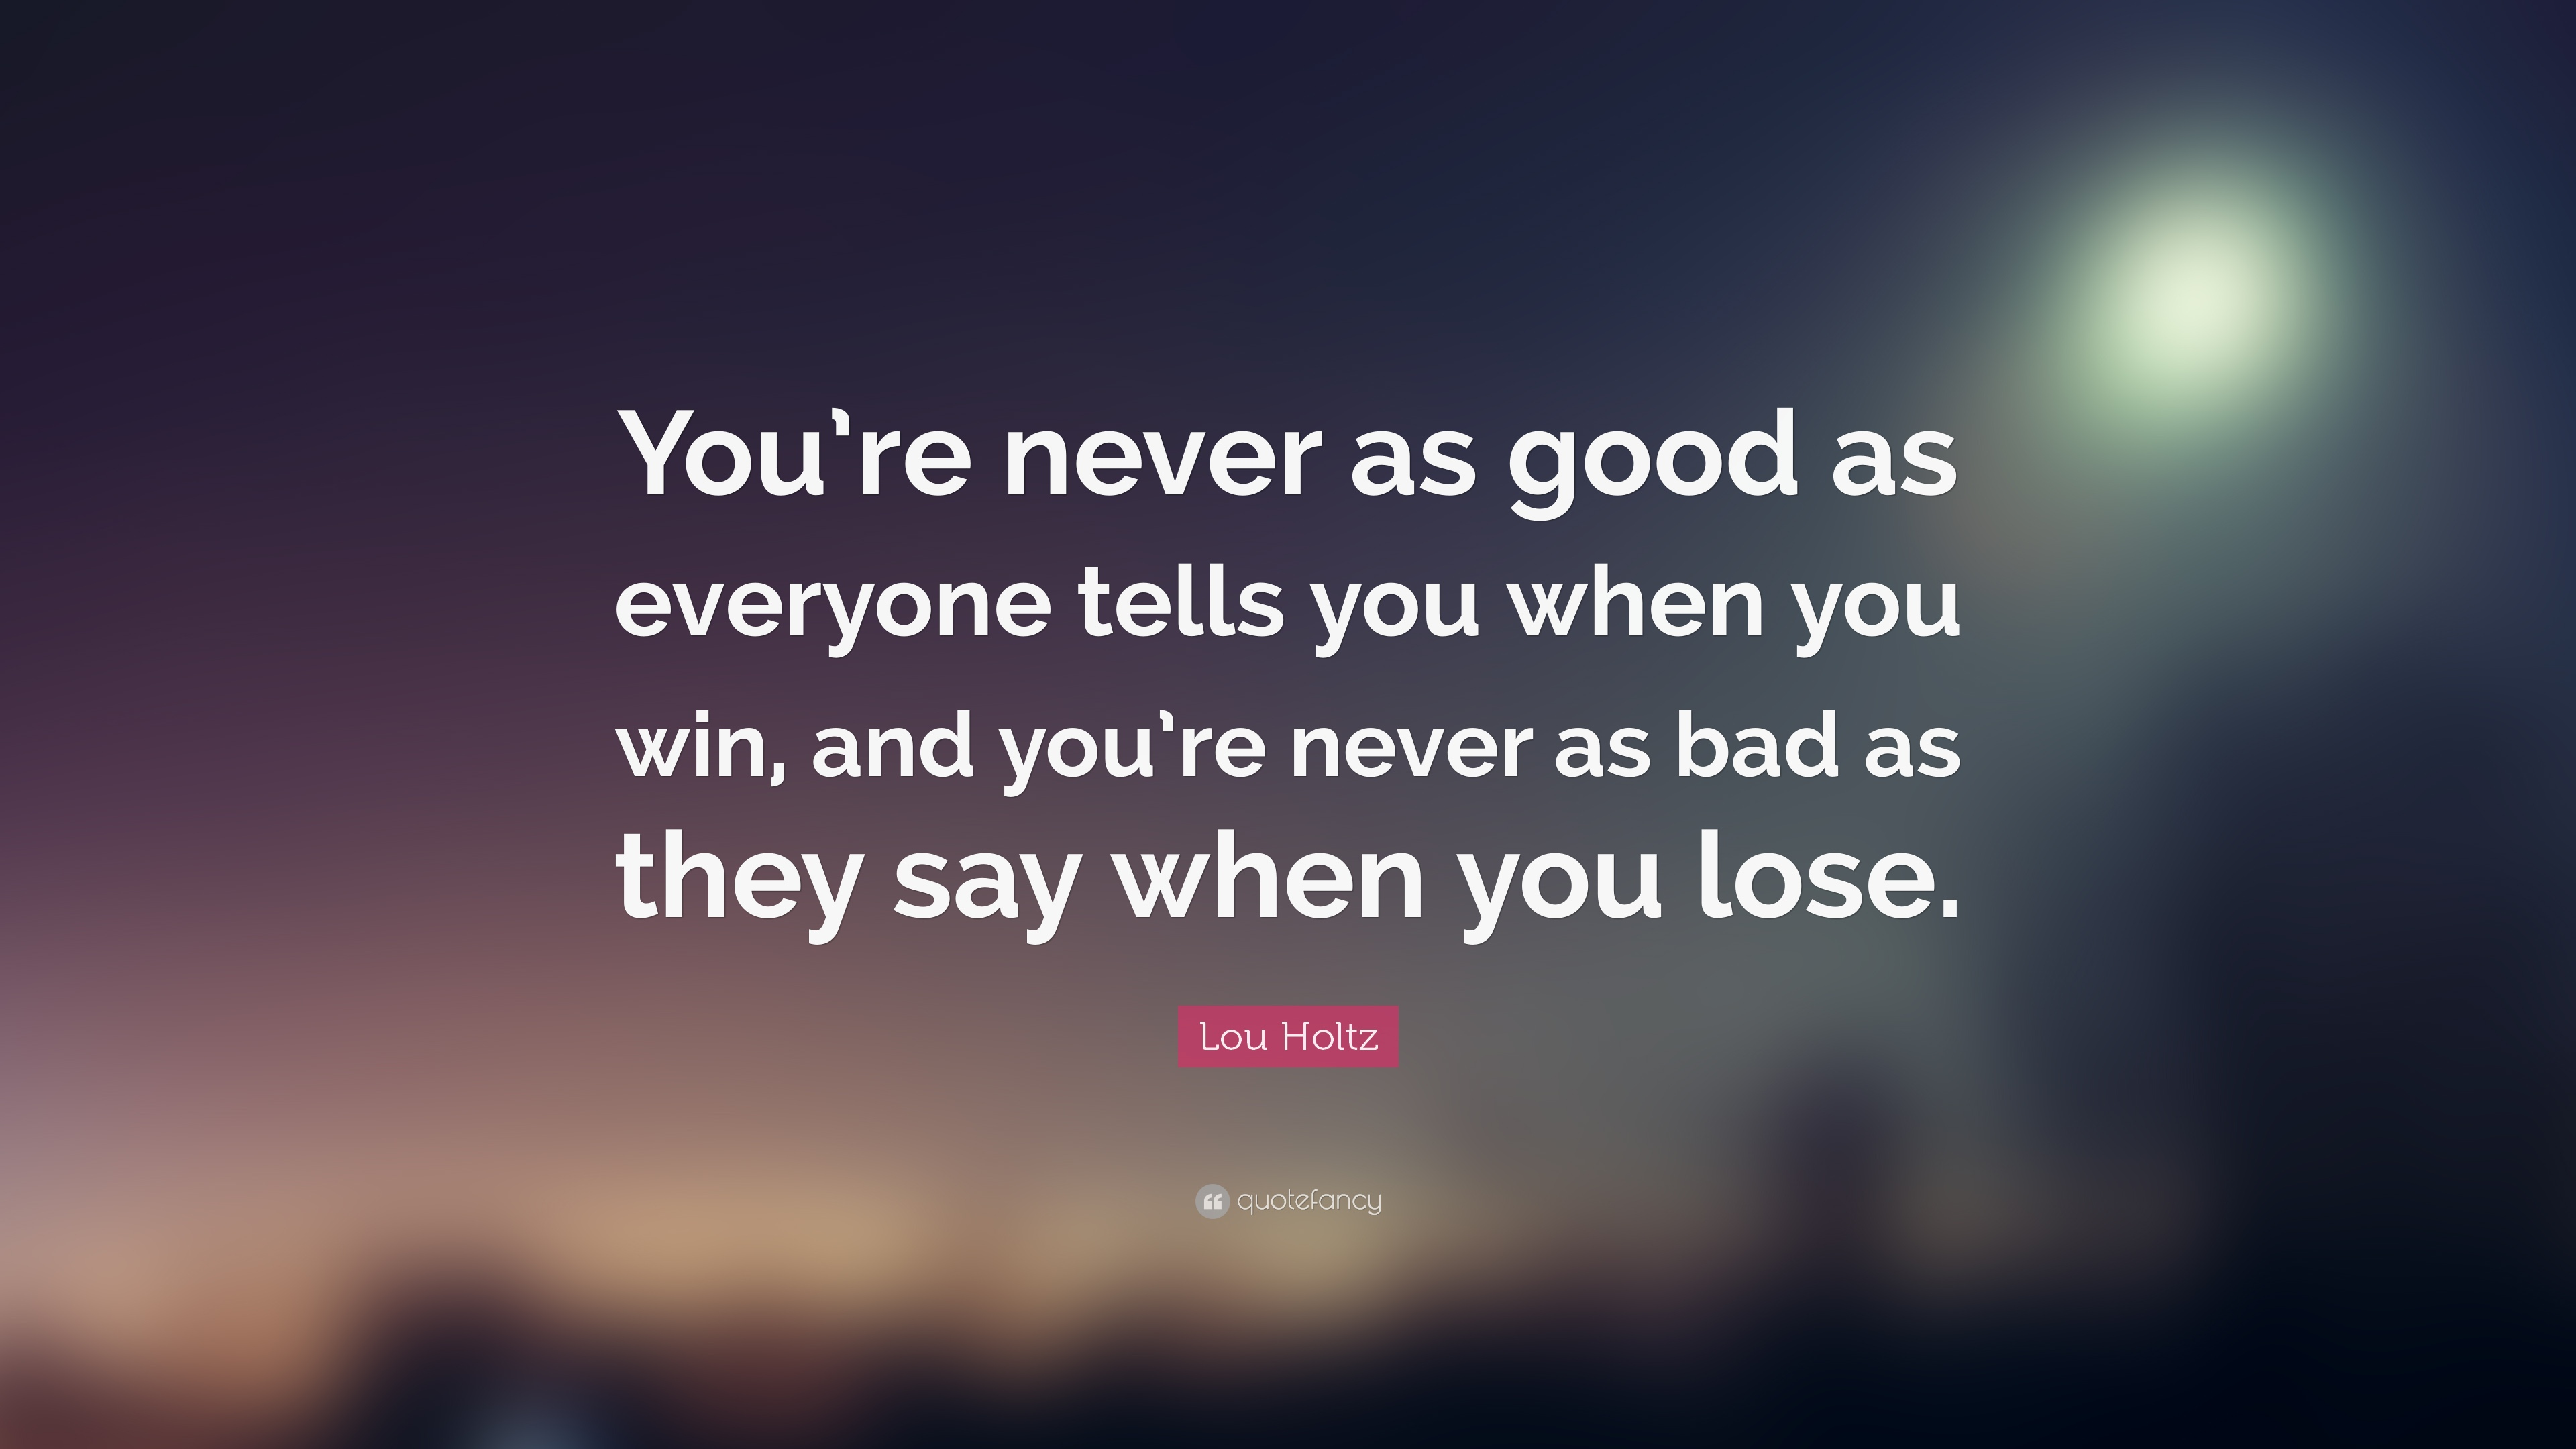 Basketball Quotes Youre Never As Good Everyone Tells You When